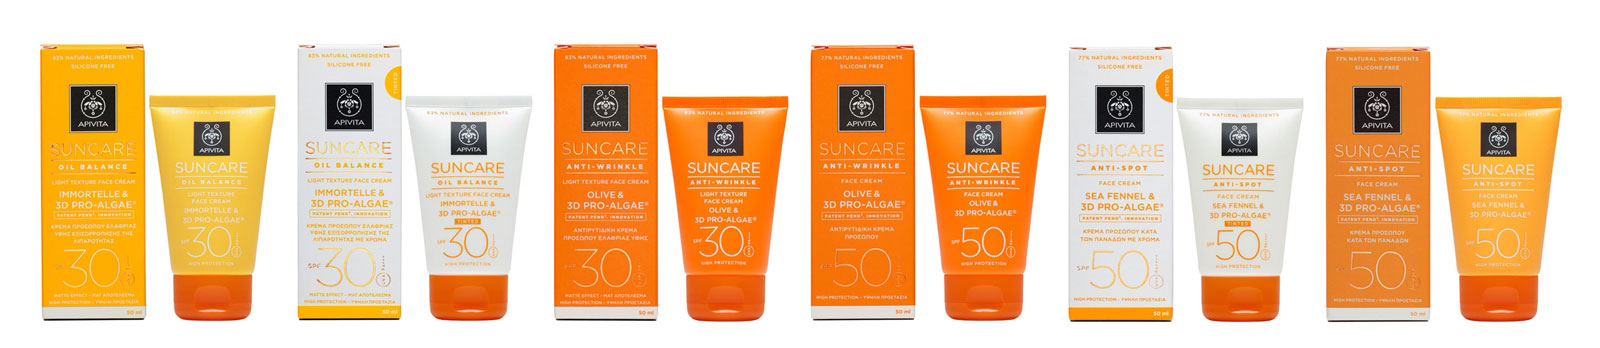 Apivita-new-face-suncare1